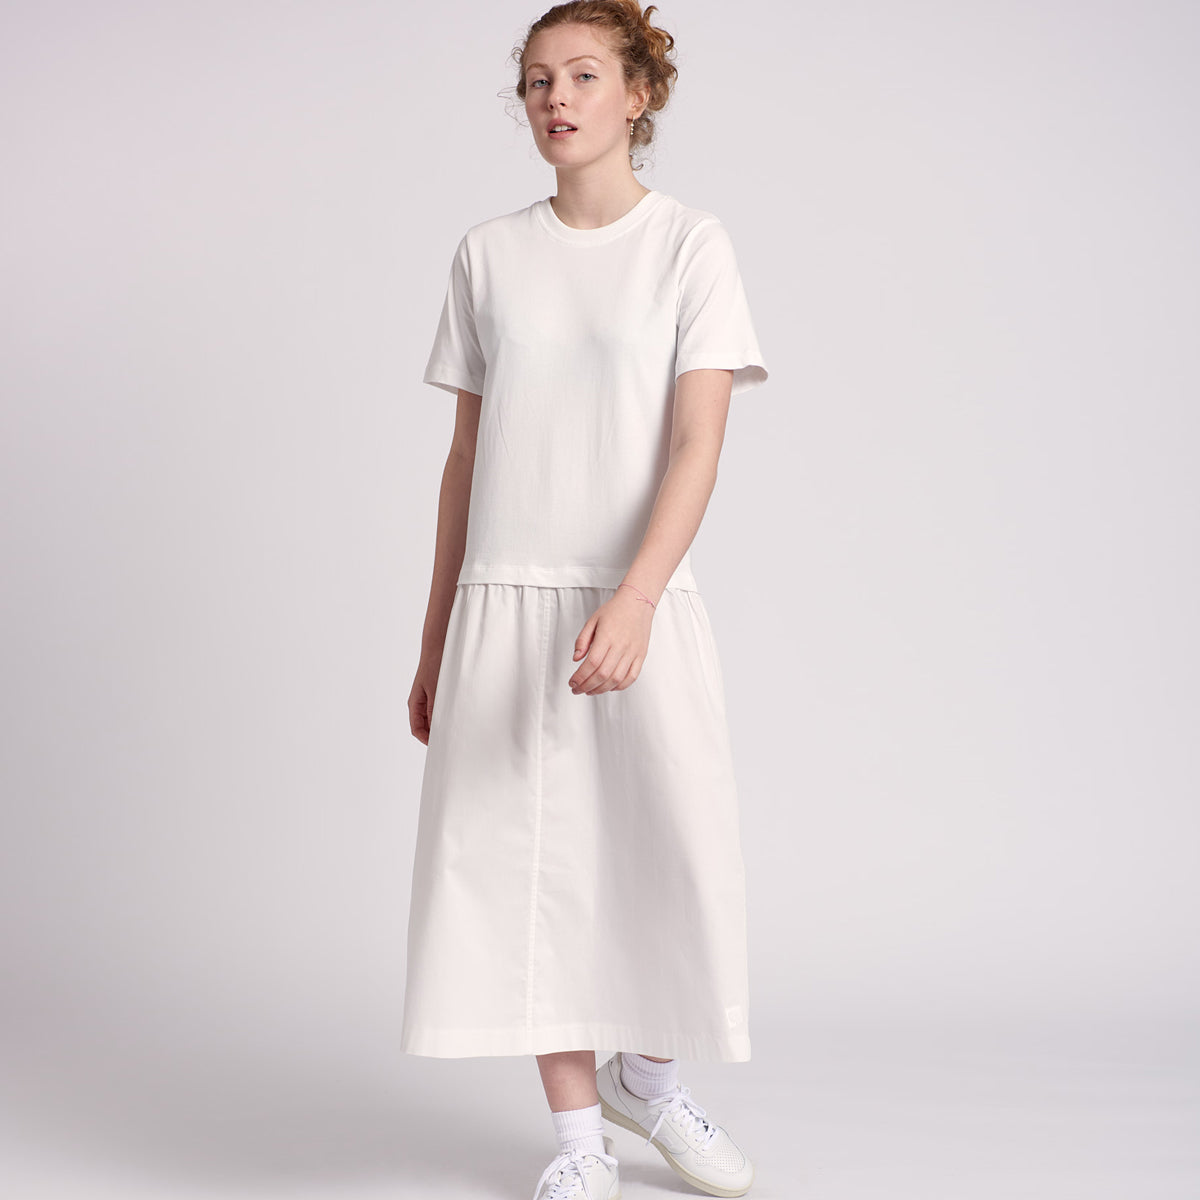 TARA Langes T-Shirt-Kleid